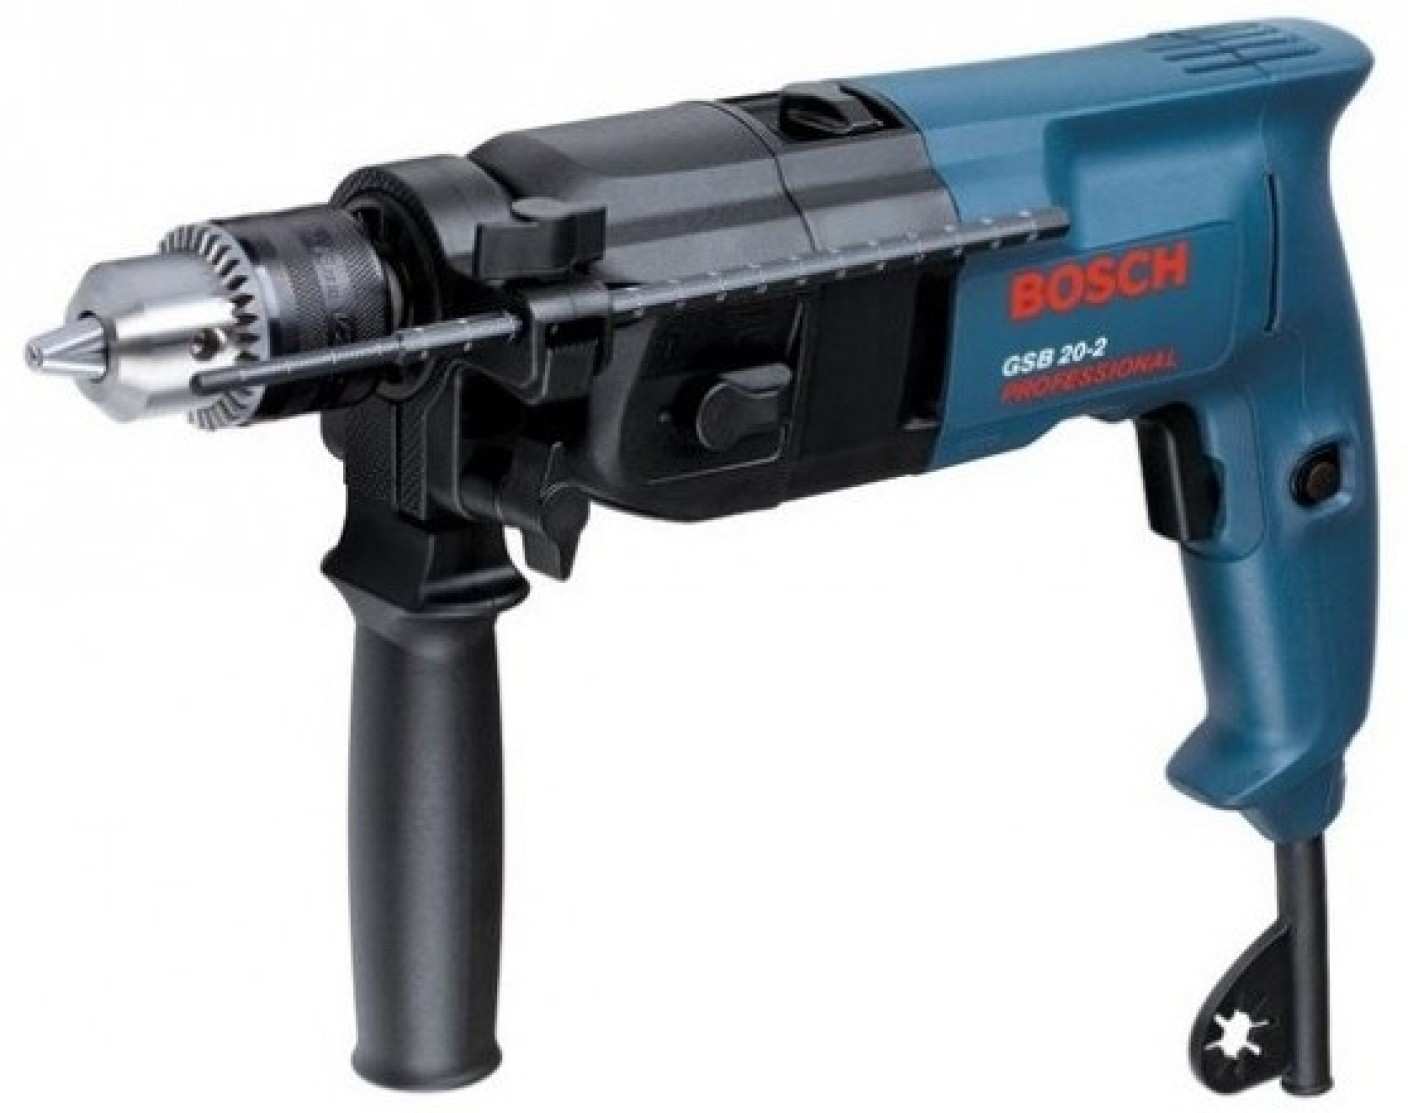 bosch gsb 20 2re pro impact driver price in india buy